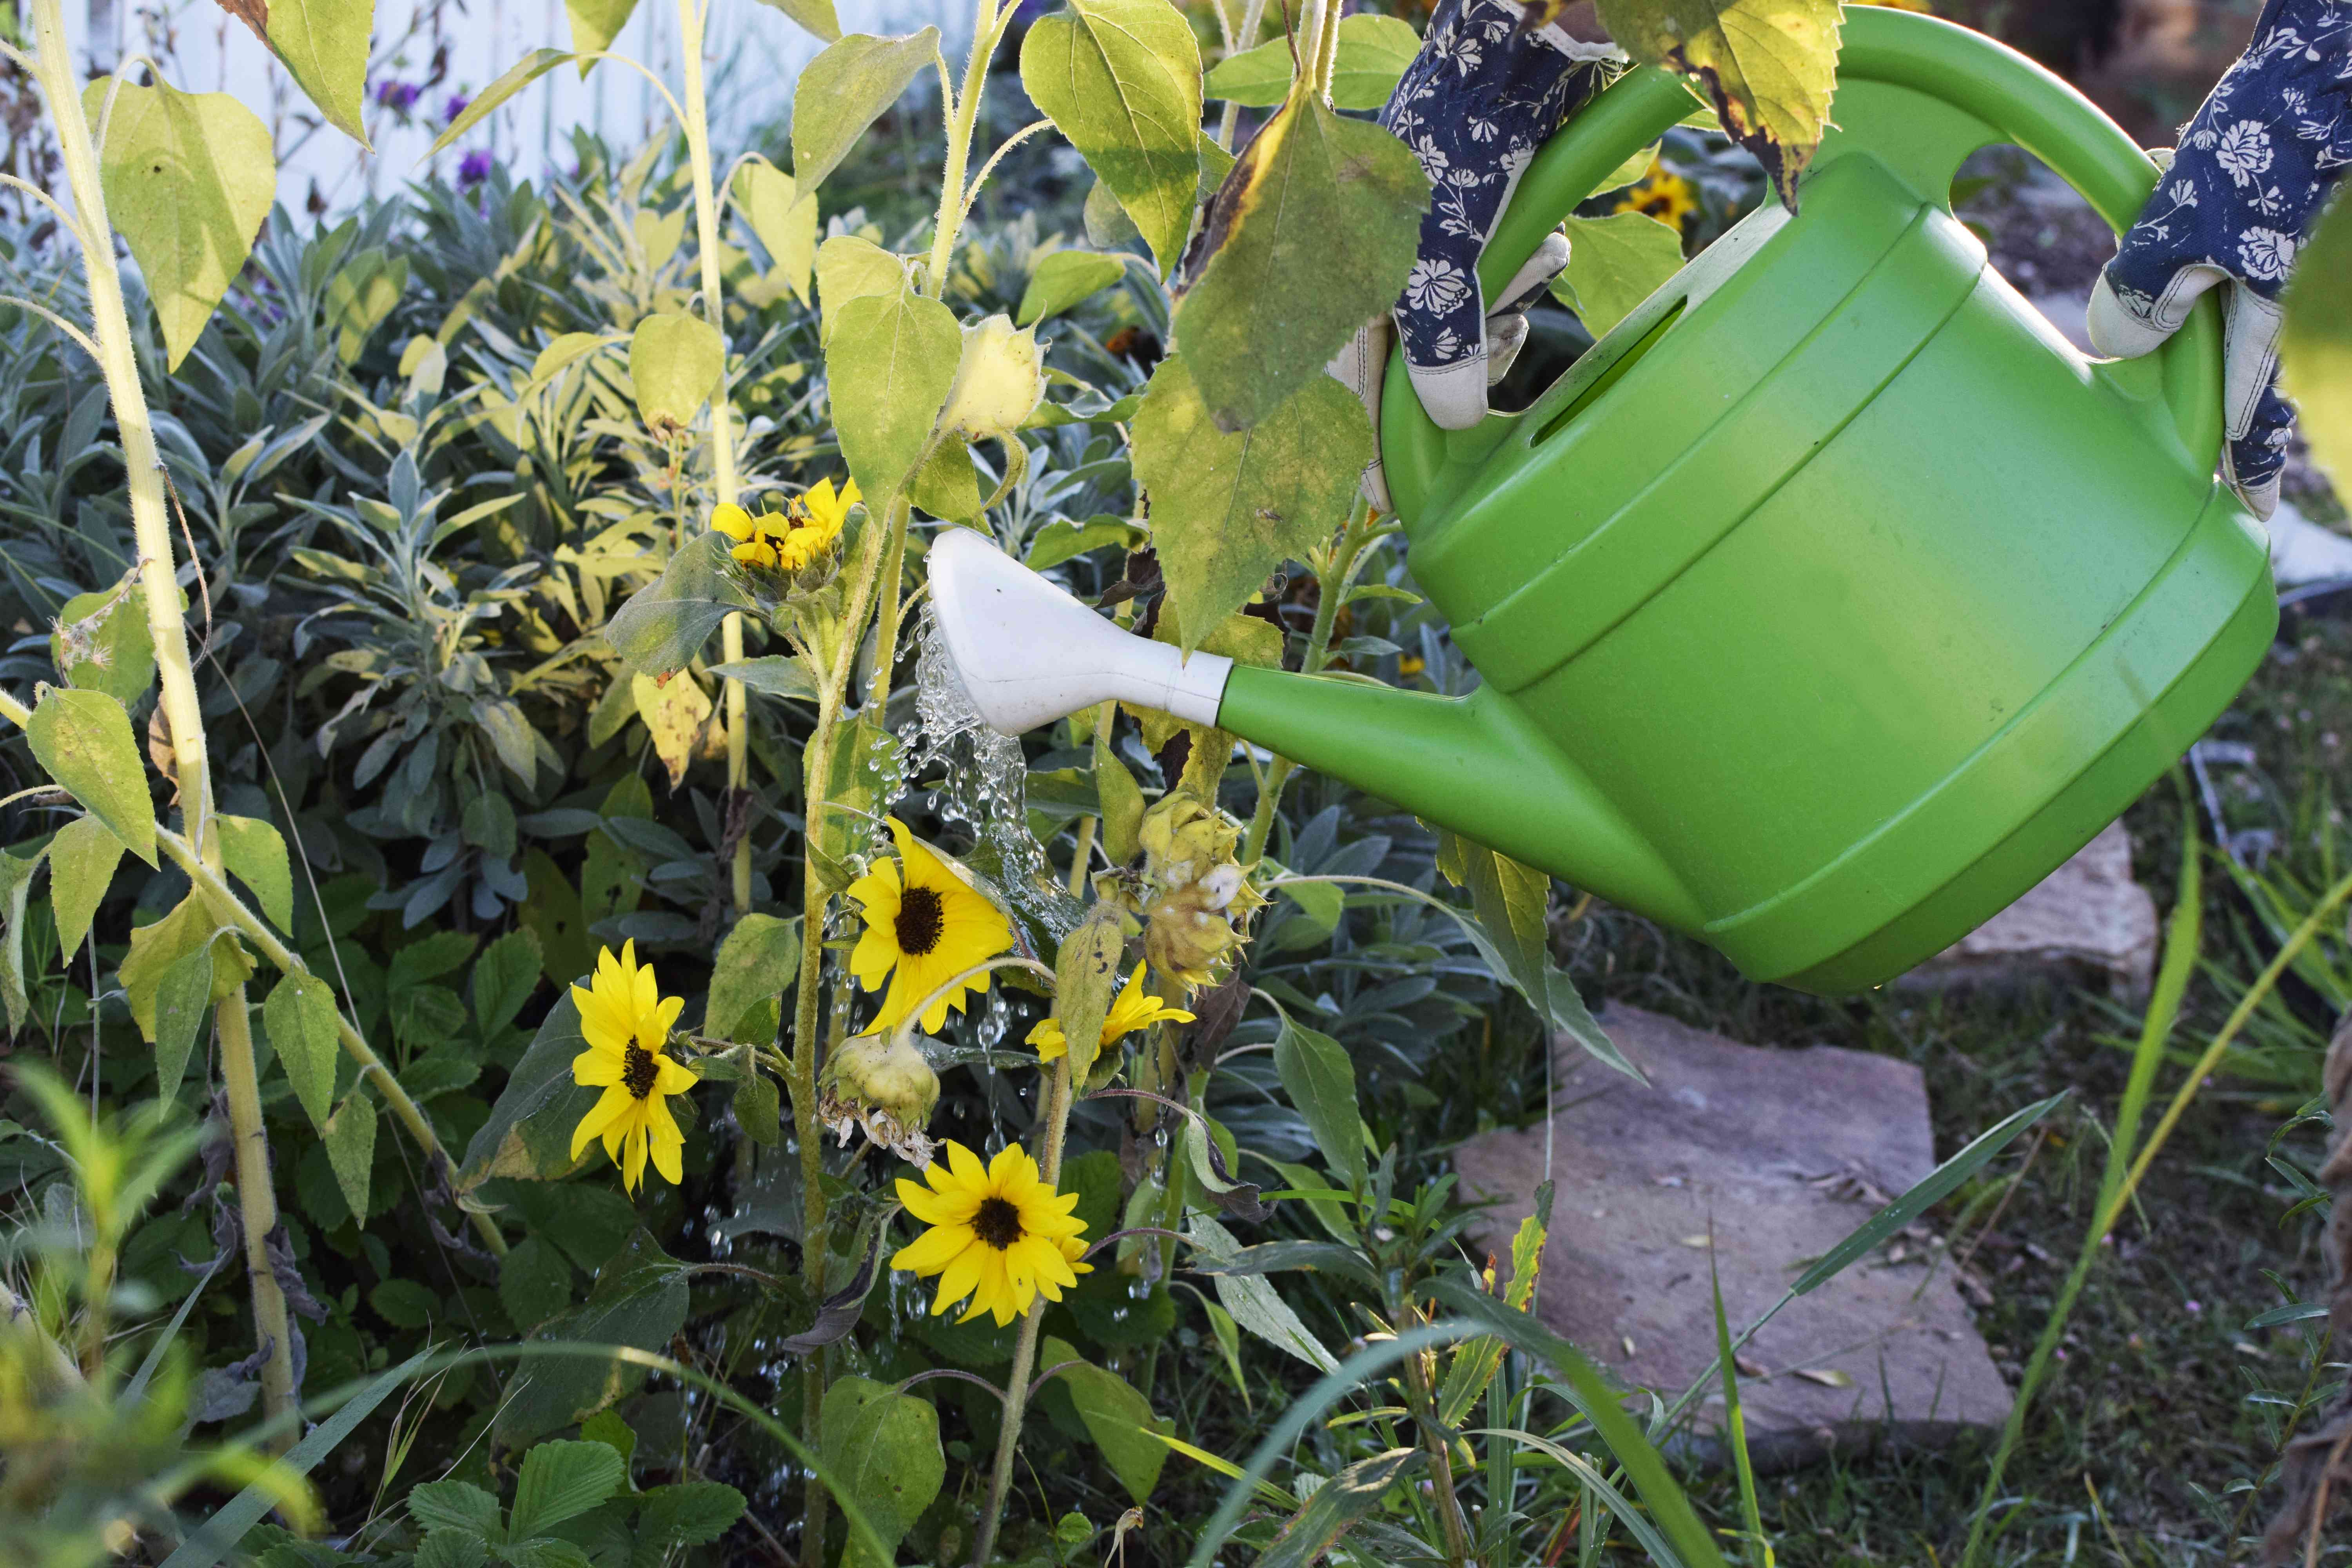 green watering can is used to water batch of sunflowers growing in personal garden